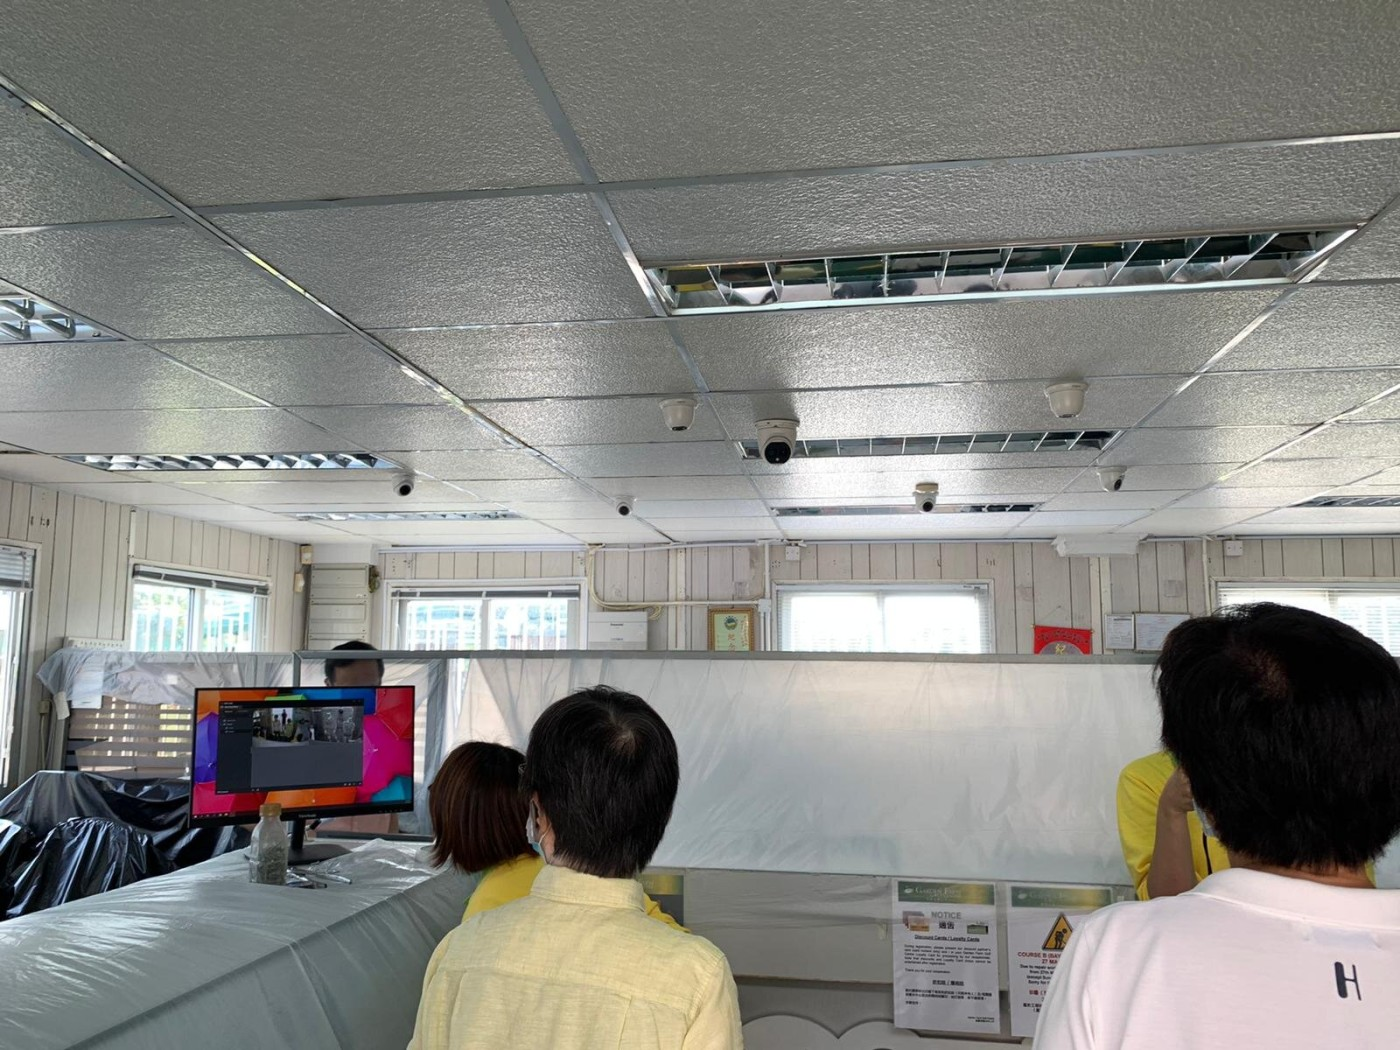 Body Temperature Screening Solution Setup References-Entertainment Place with Ceiling Mounted